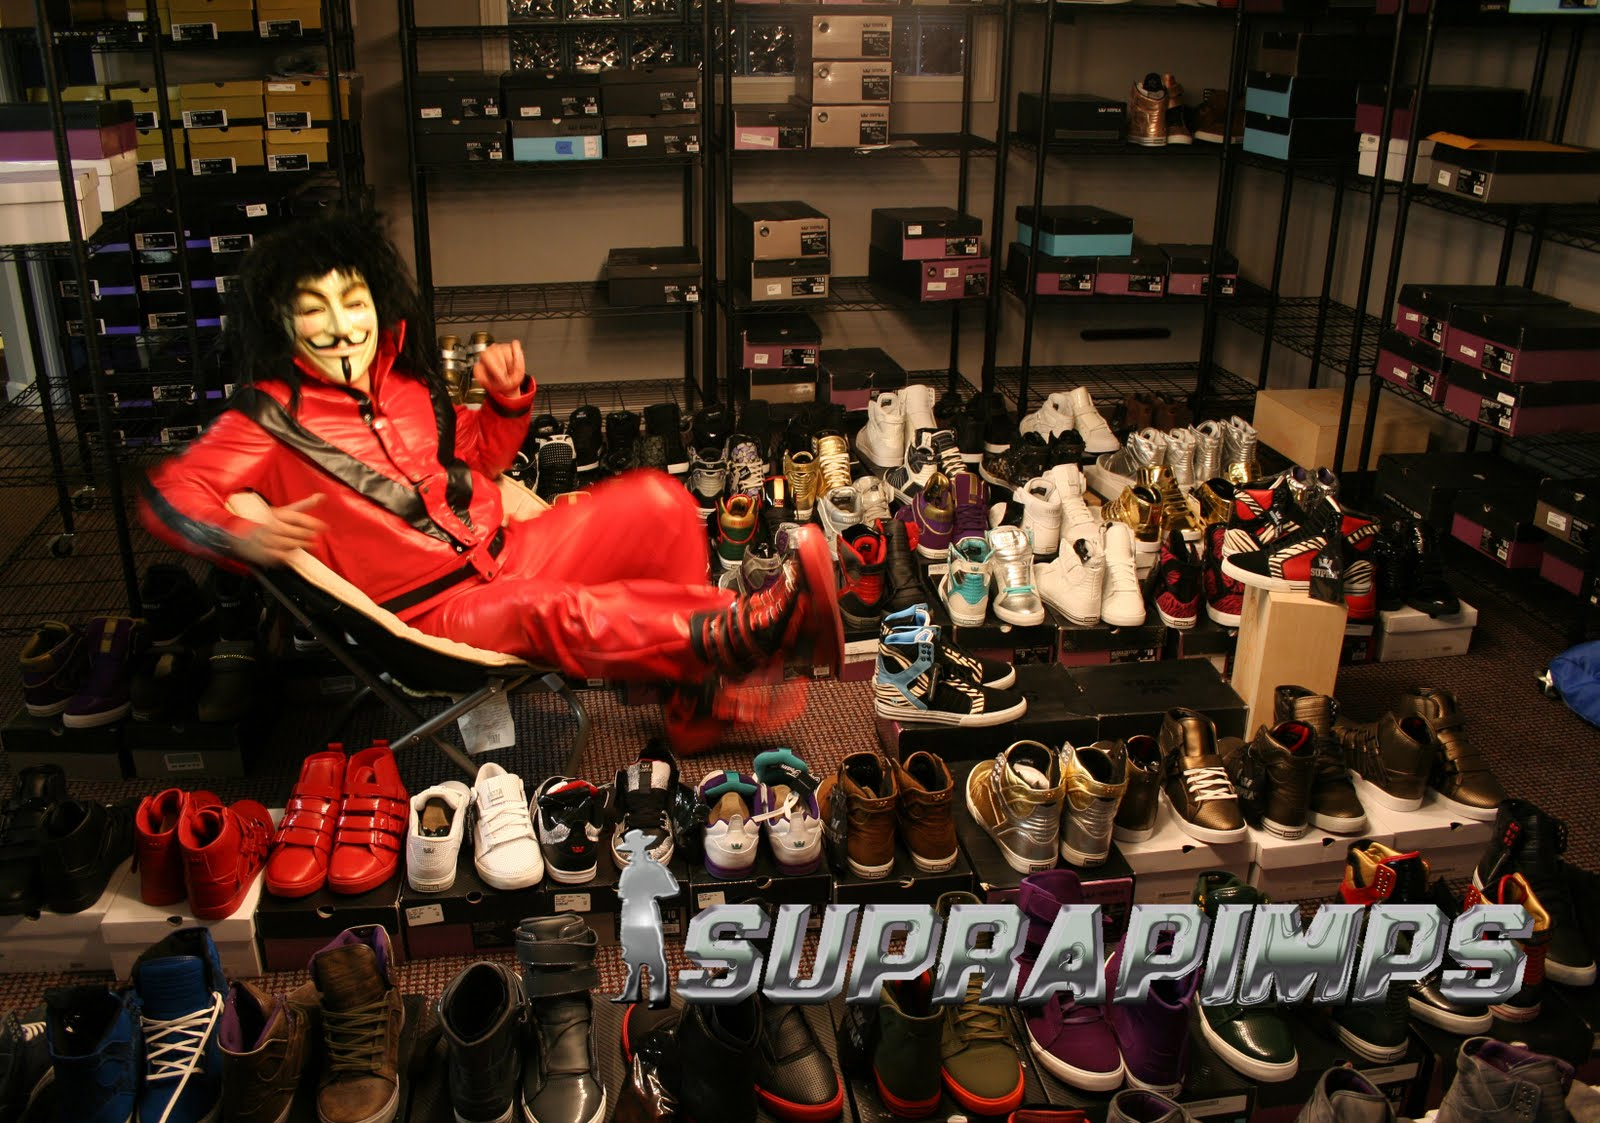 THIS IS THE SUPRAFOOTWEAR.ORG FORUM BLOG